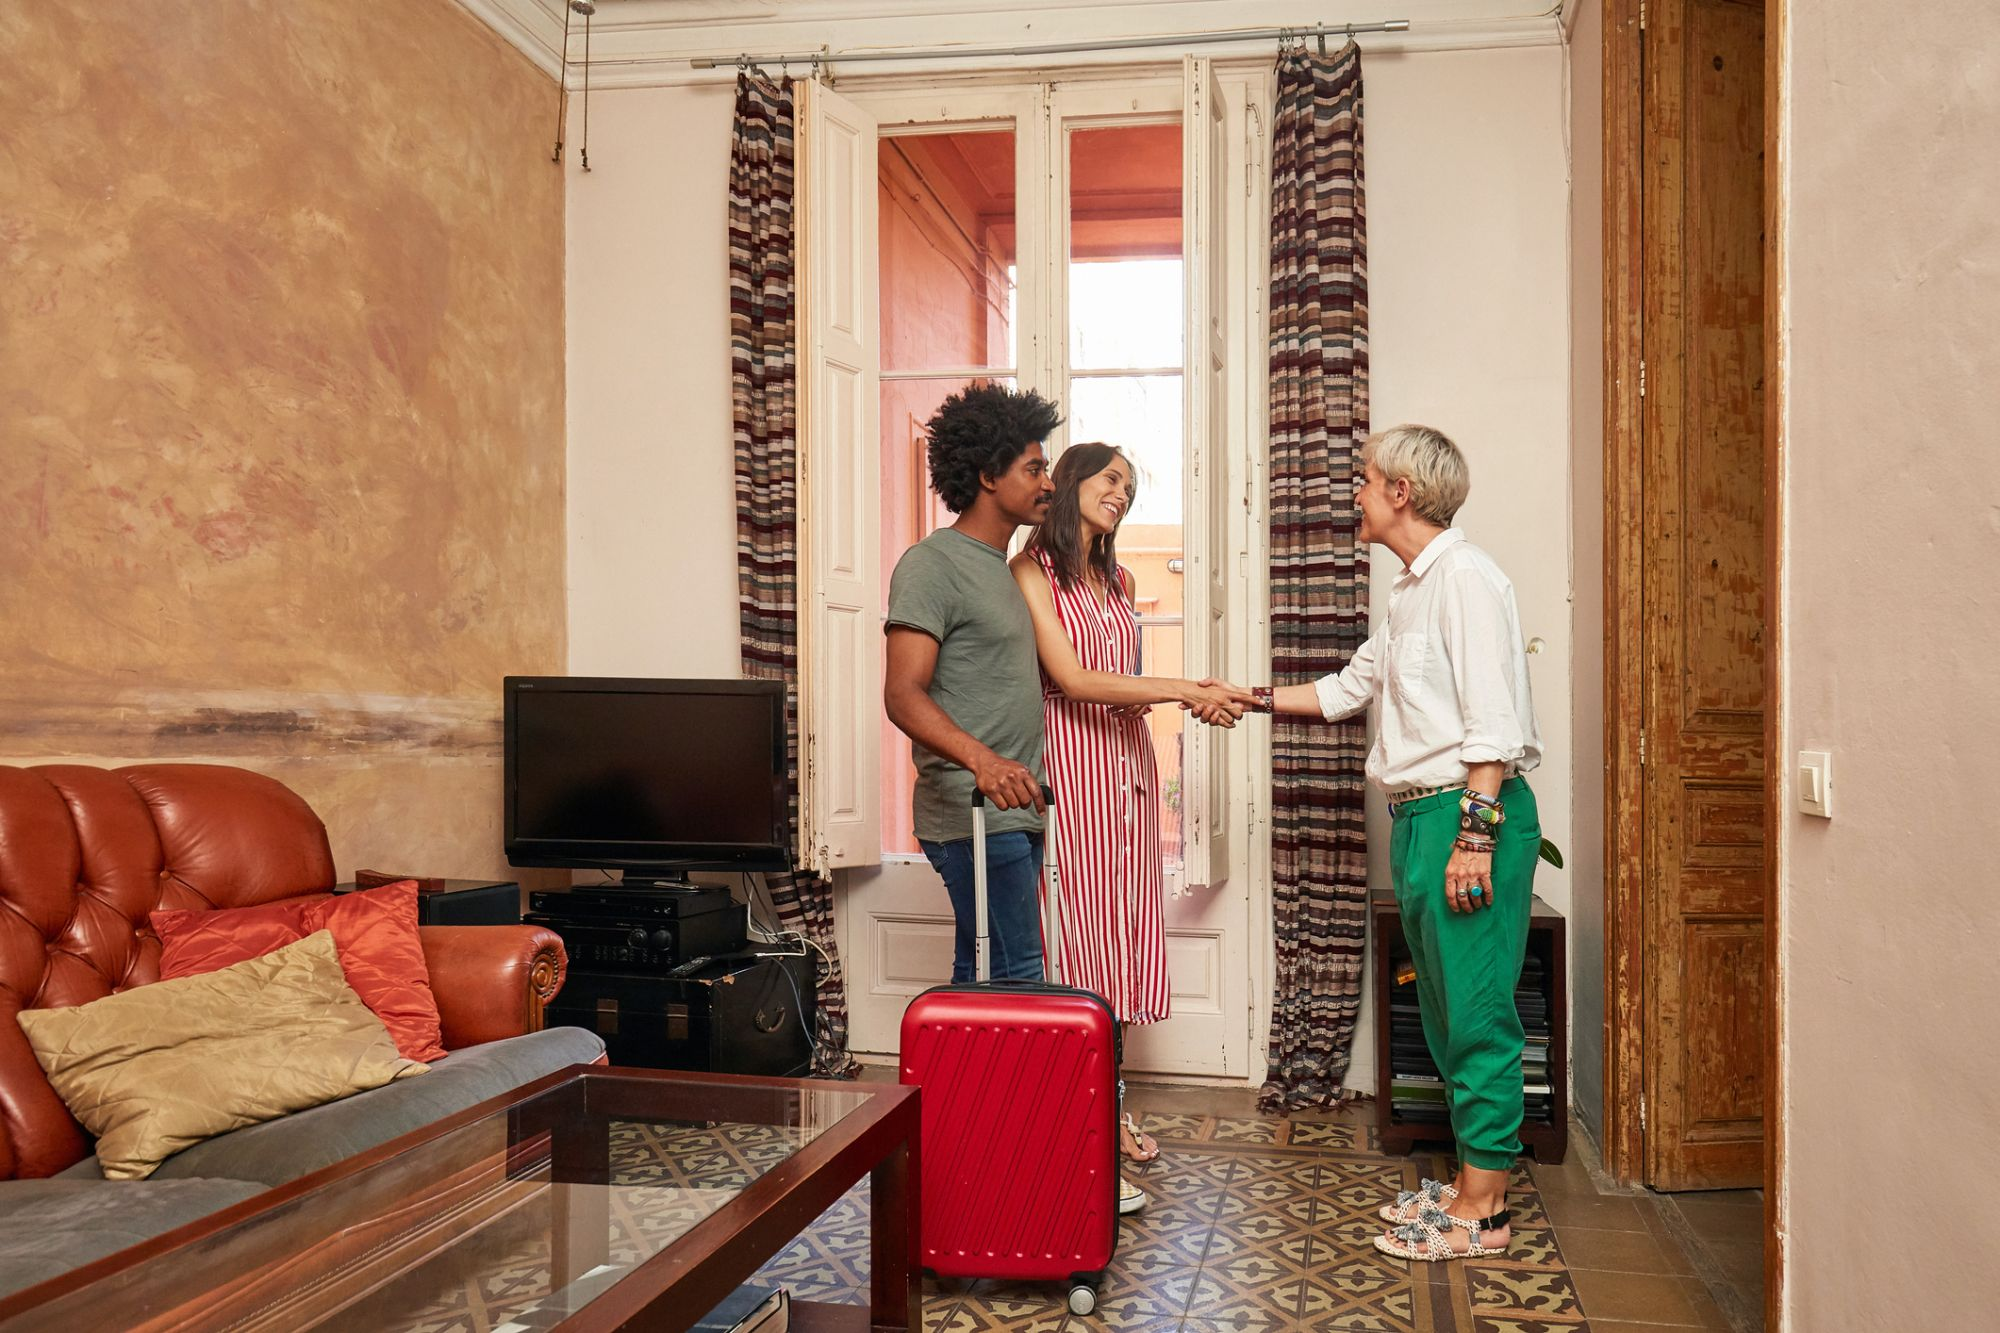 Women Should Consider the Short-Term Rental and Travel Tech Ecosystems to Fund Their Businesses